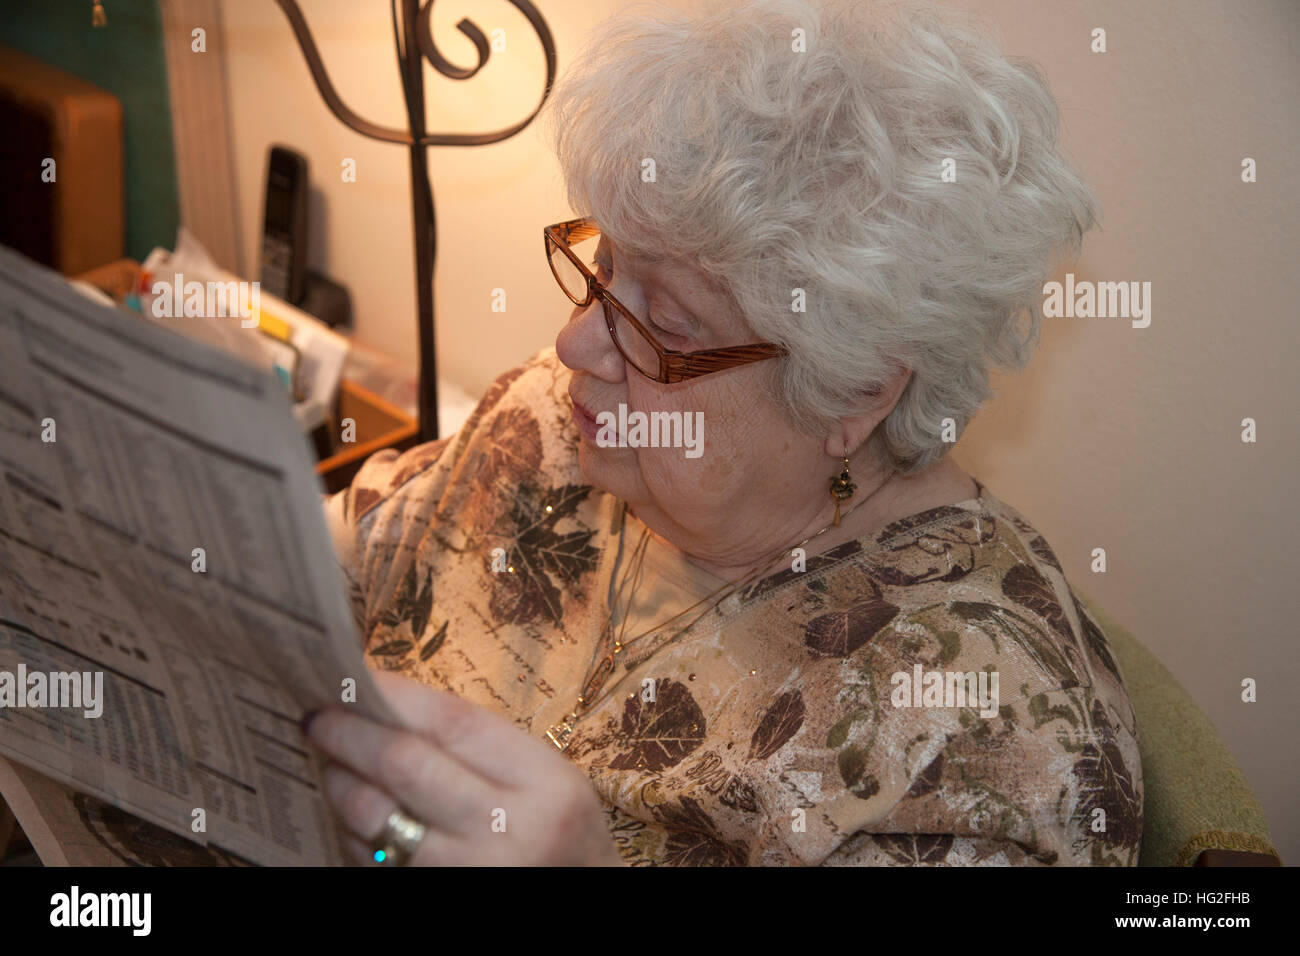 Older Senior woman totally engrossed in reading the newspaper. Downers Grove Illinois IL USA - Stock Image